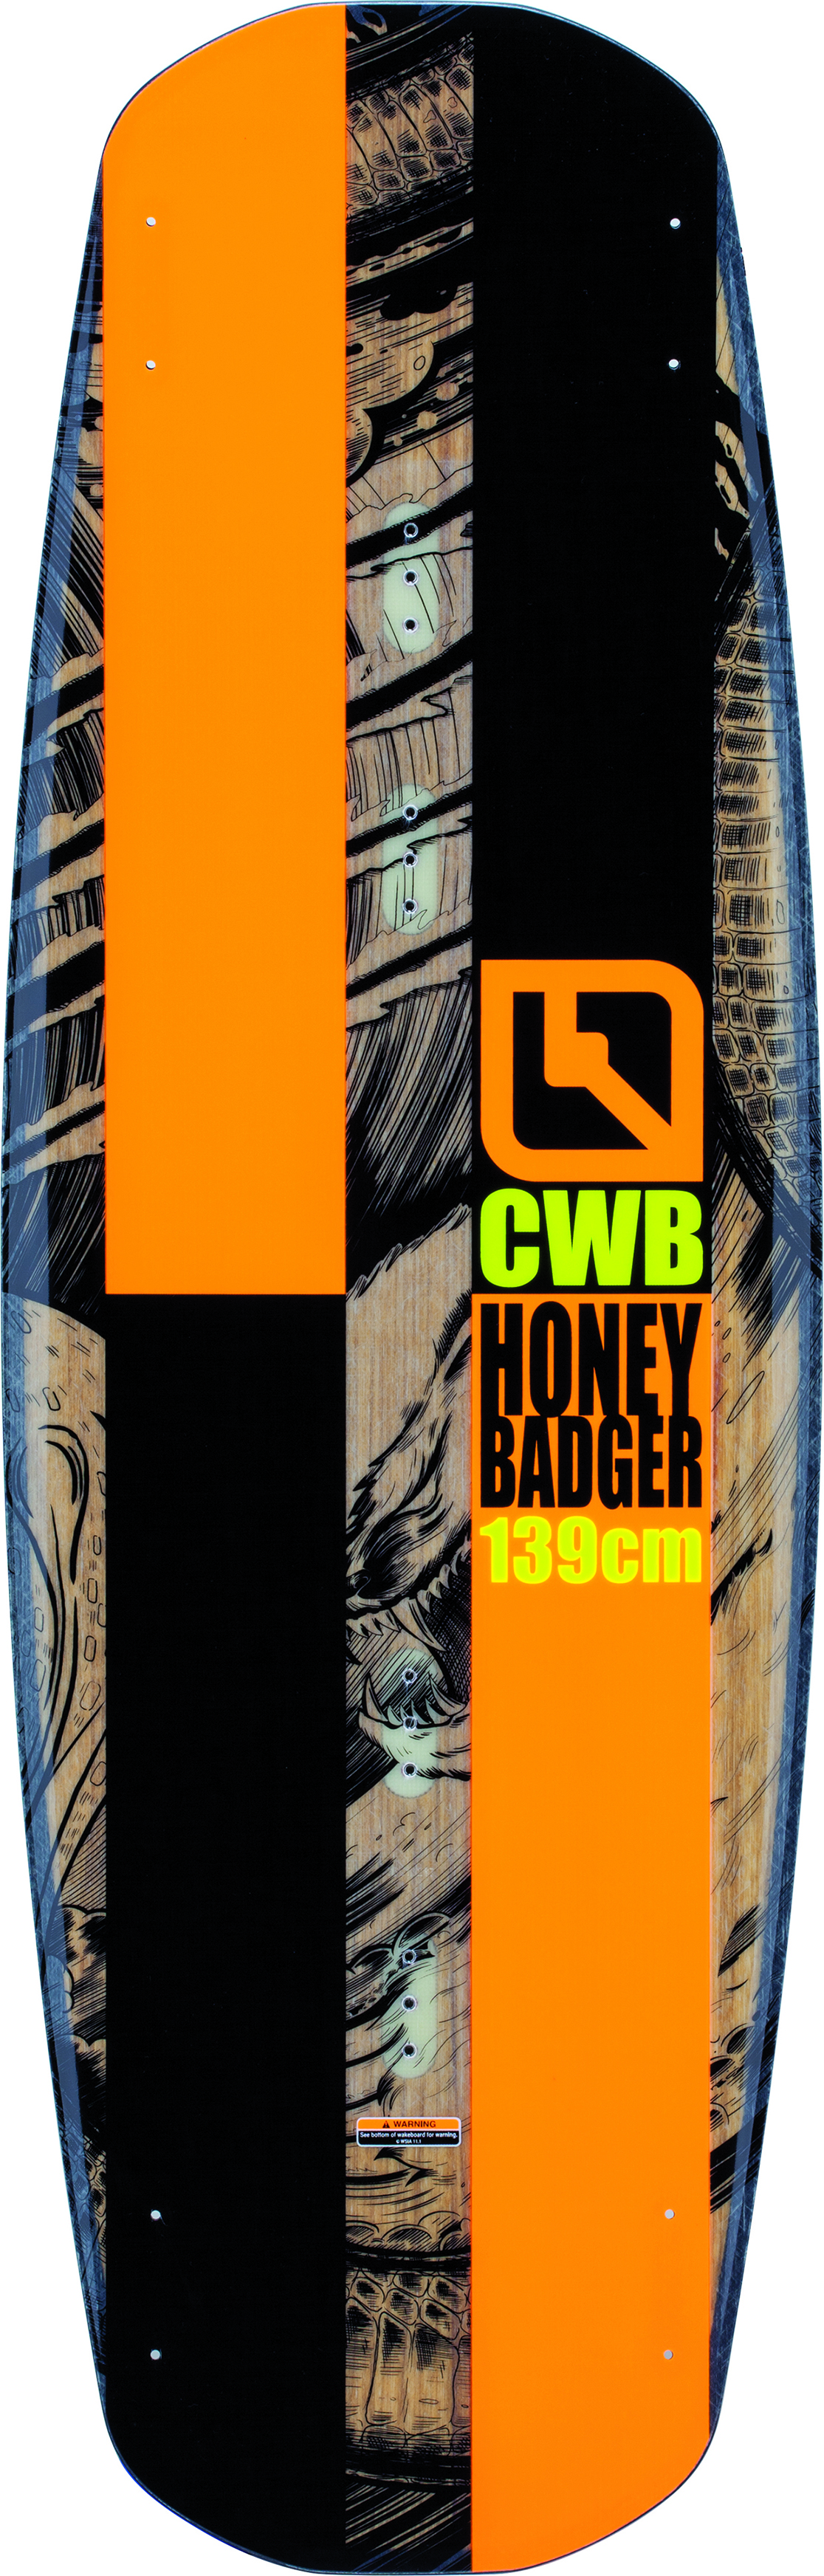 Вейкборд CWB мужской HONEYBADGER Black-Orange (BKO)